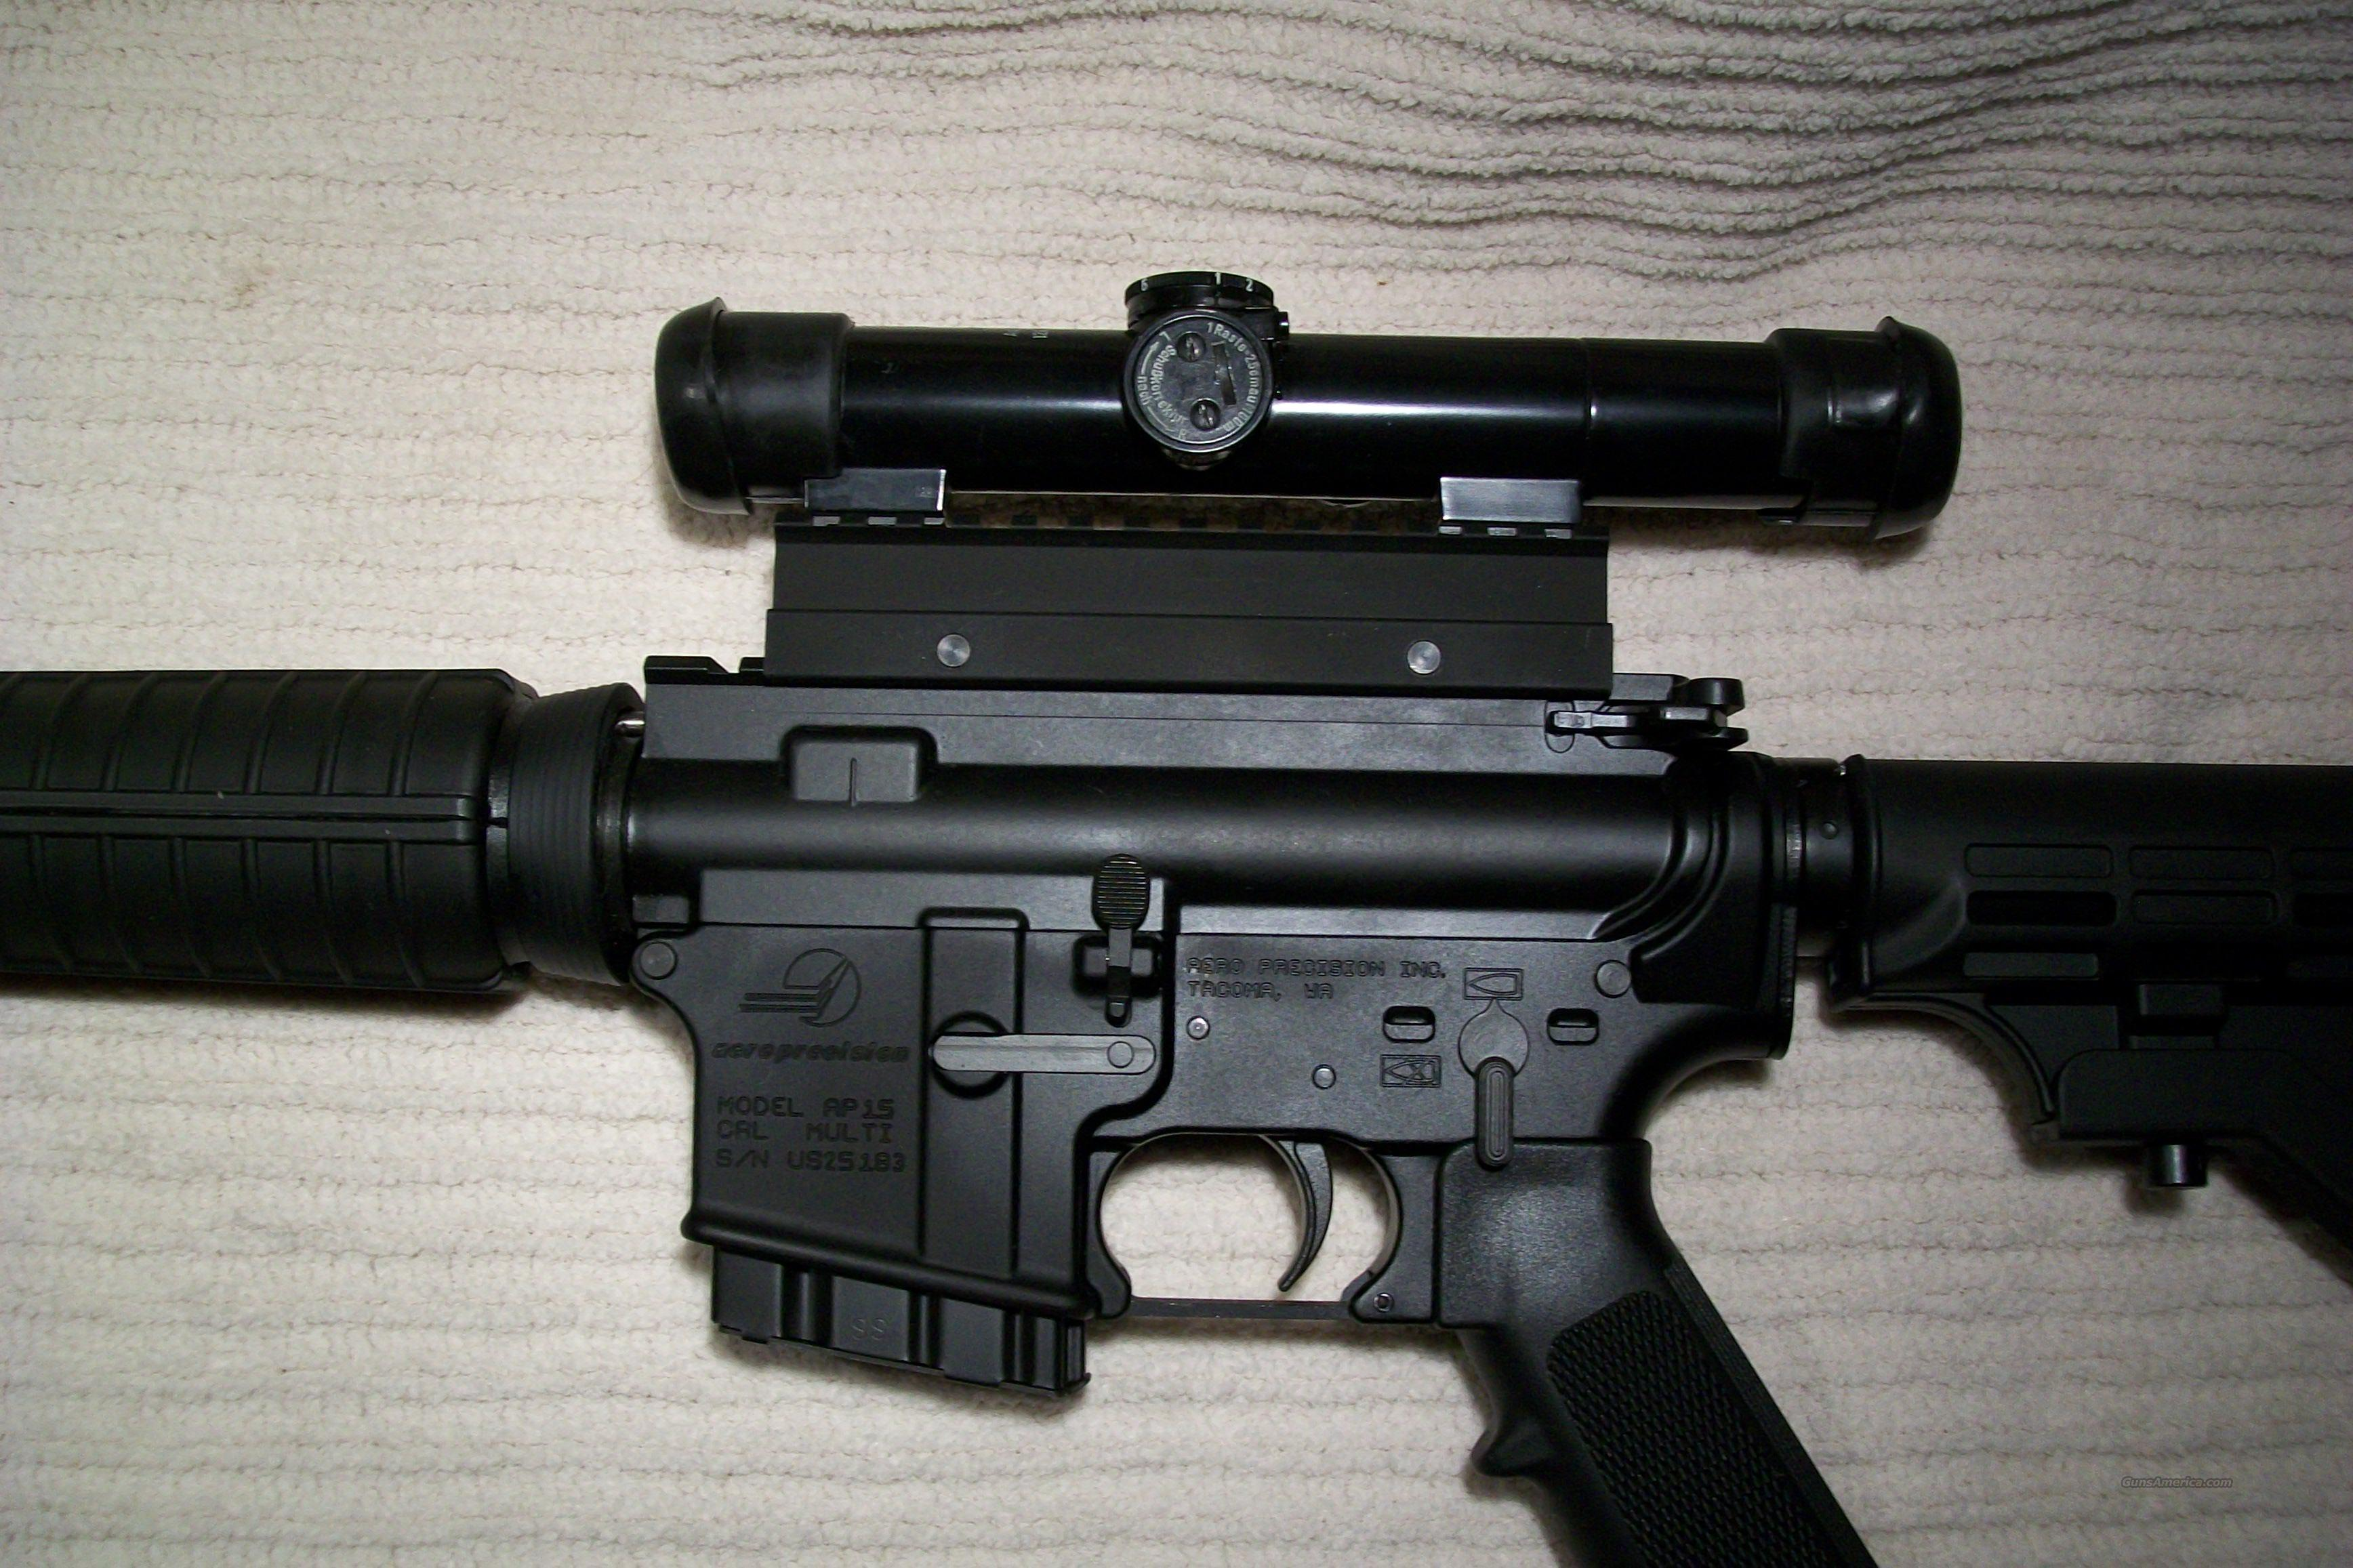 California Compliant AP-15 M4 5.56 Cal.HK ZF1Scope   Guns > Rifles > AR-15 Rifles - Small Manufacturers > Complete Rifle